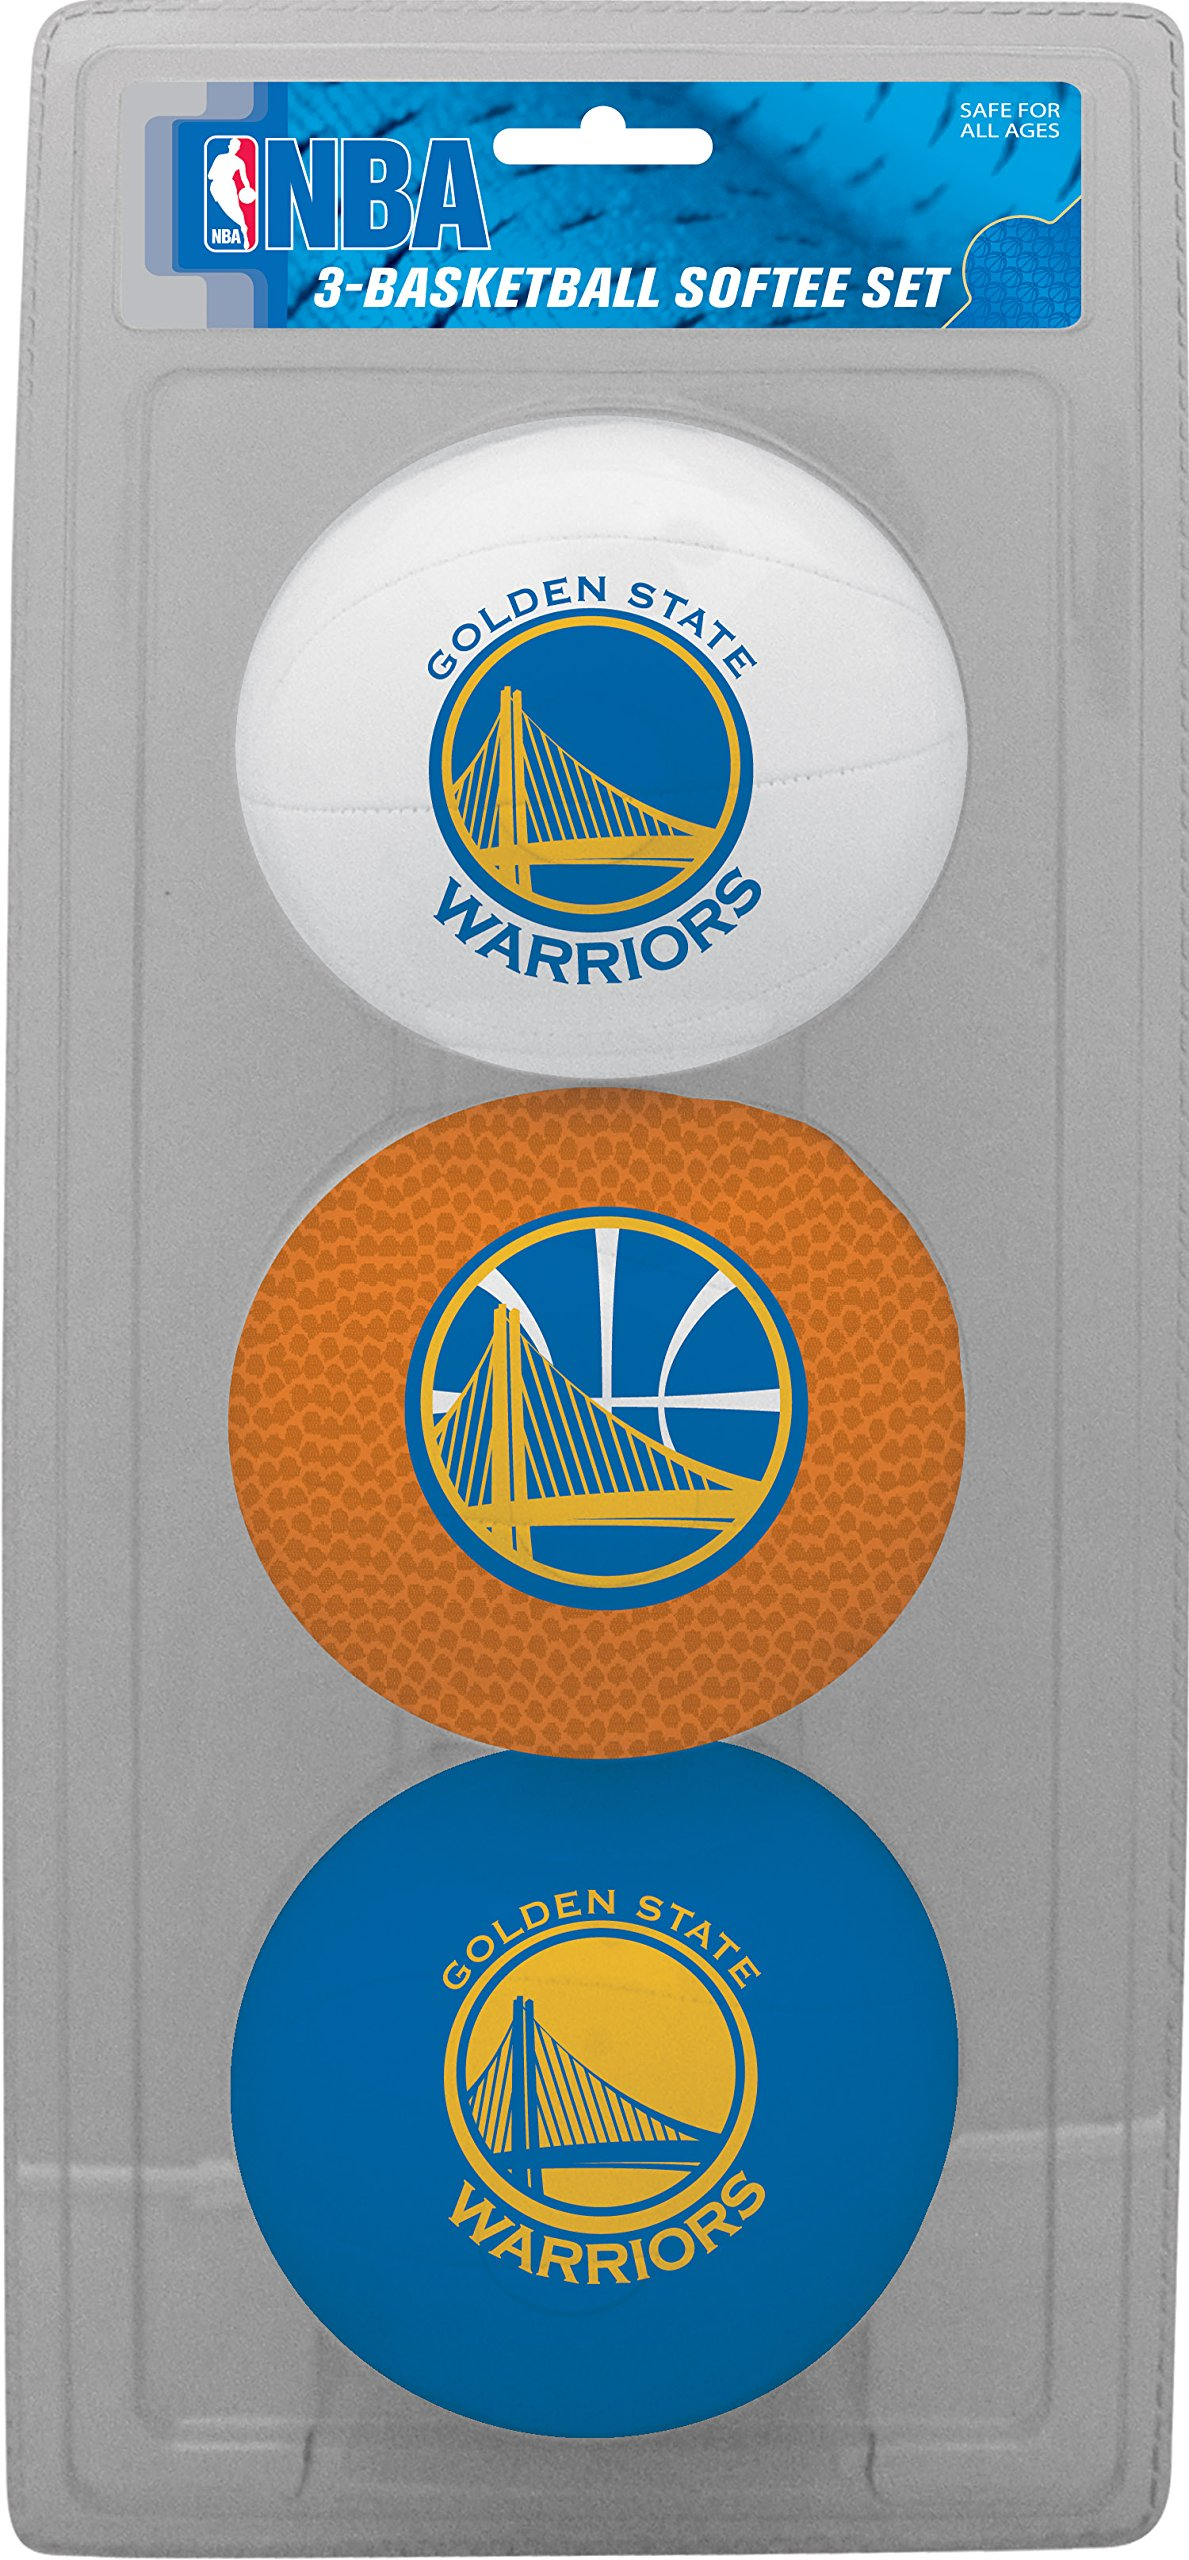 NBA Golden State Warriors Kids Softee Basketballs (Set of 3), Size 3, Blue by Rawlings